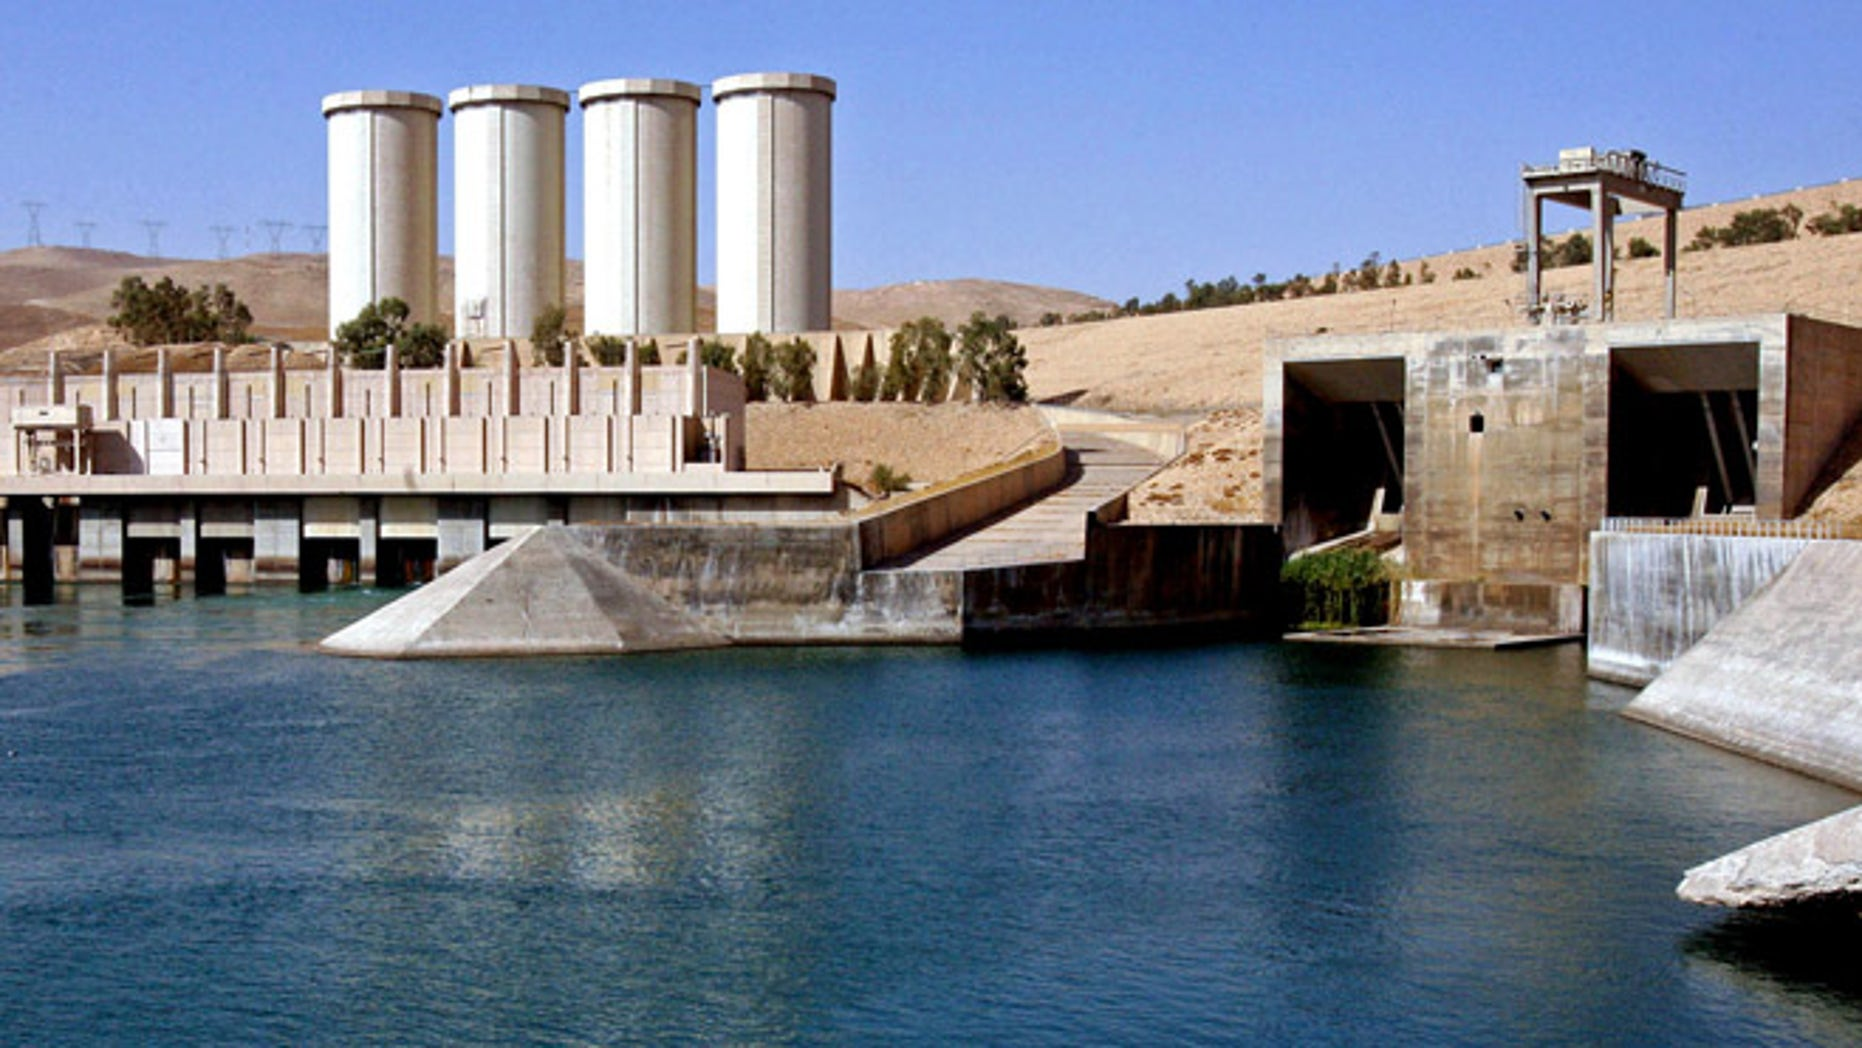 This Oct. 31, 2007 file photo, shows a general view of the dam in Mosul, 225 miles northwest of Baghdad, Iraq.